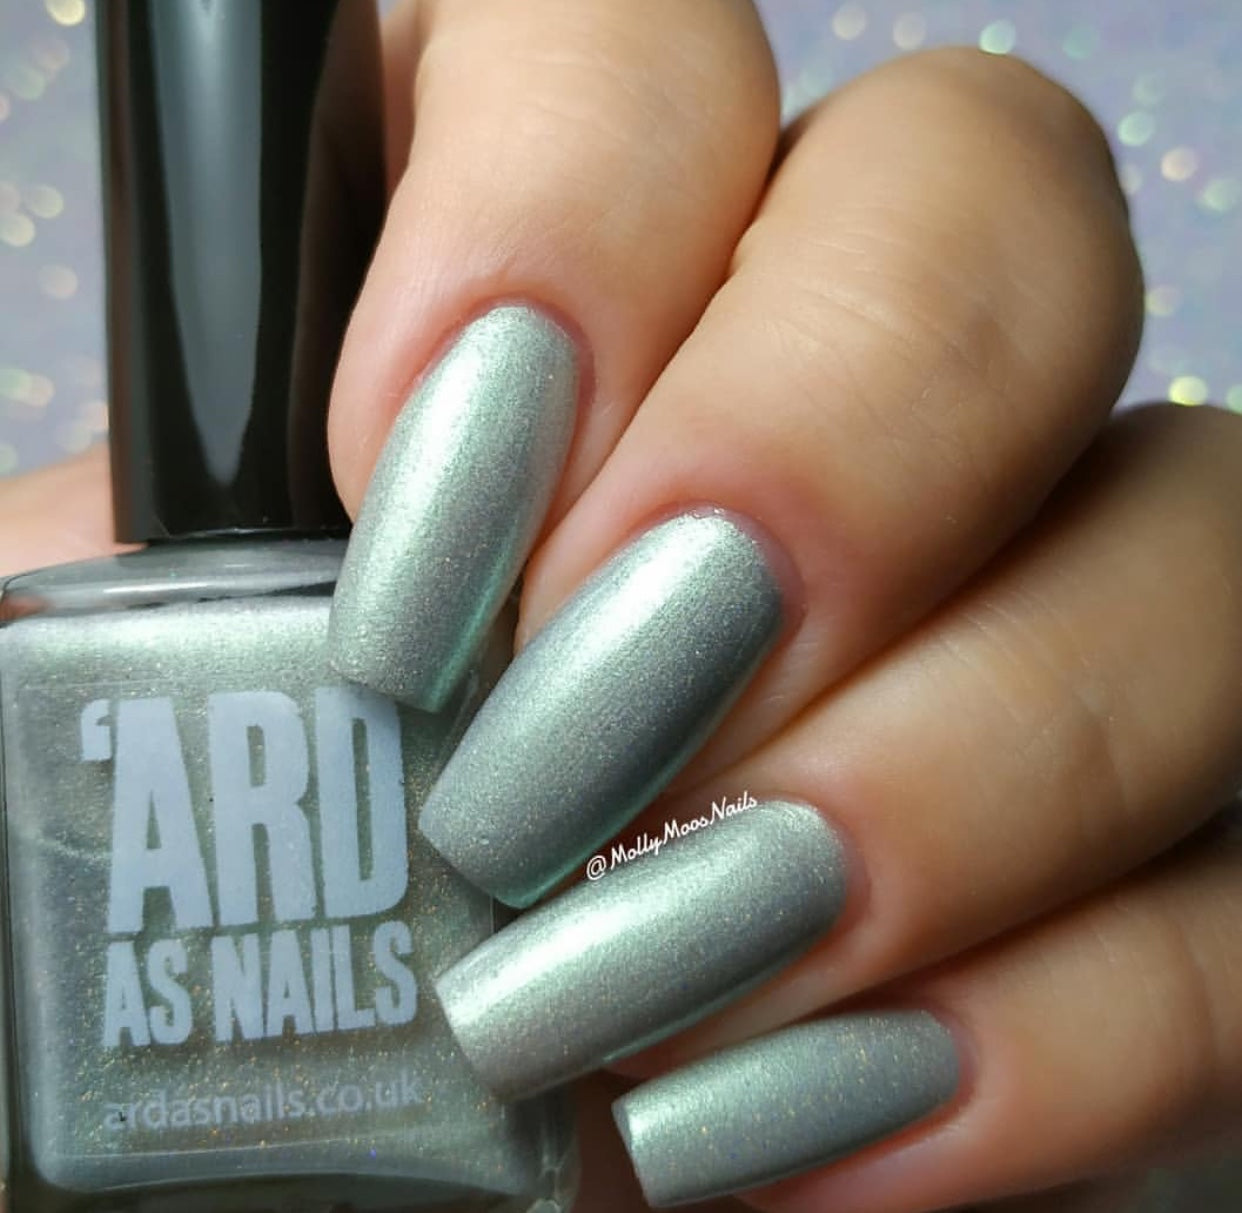 'Ard As Nails - Ethereal - Trapped In The Enchanted Forest